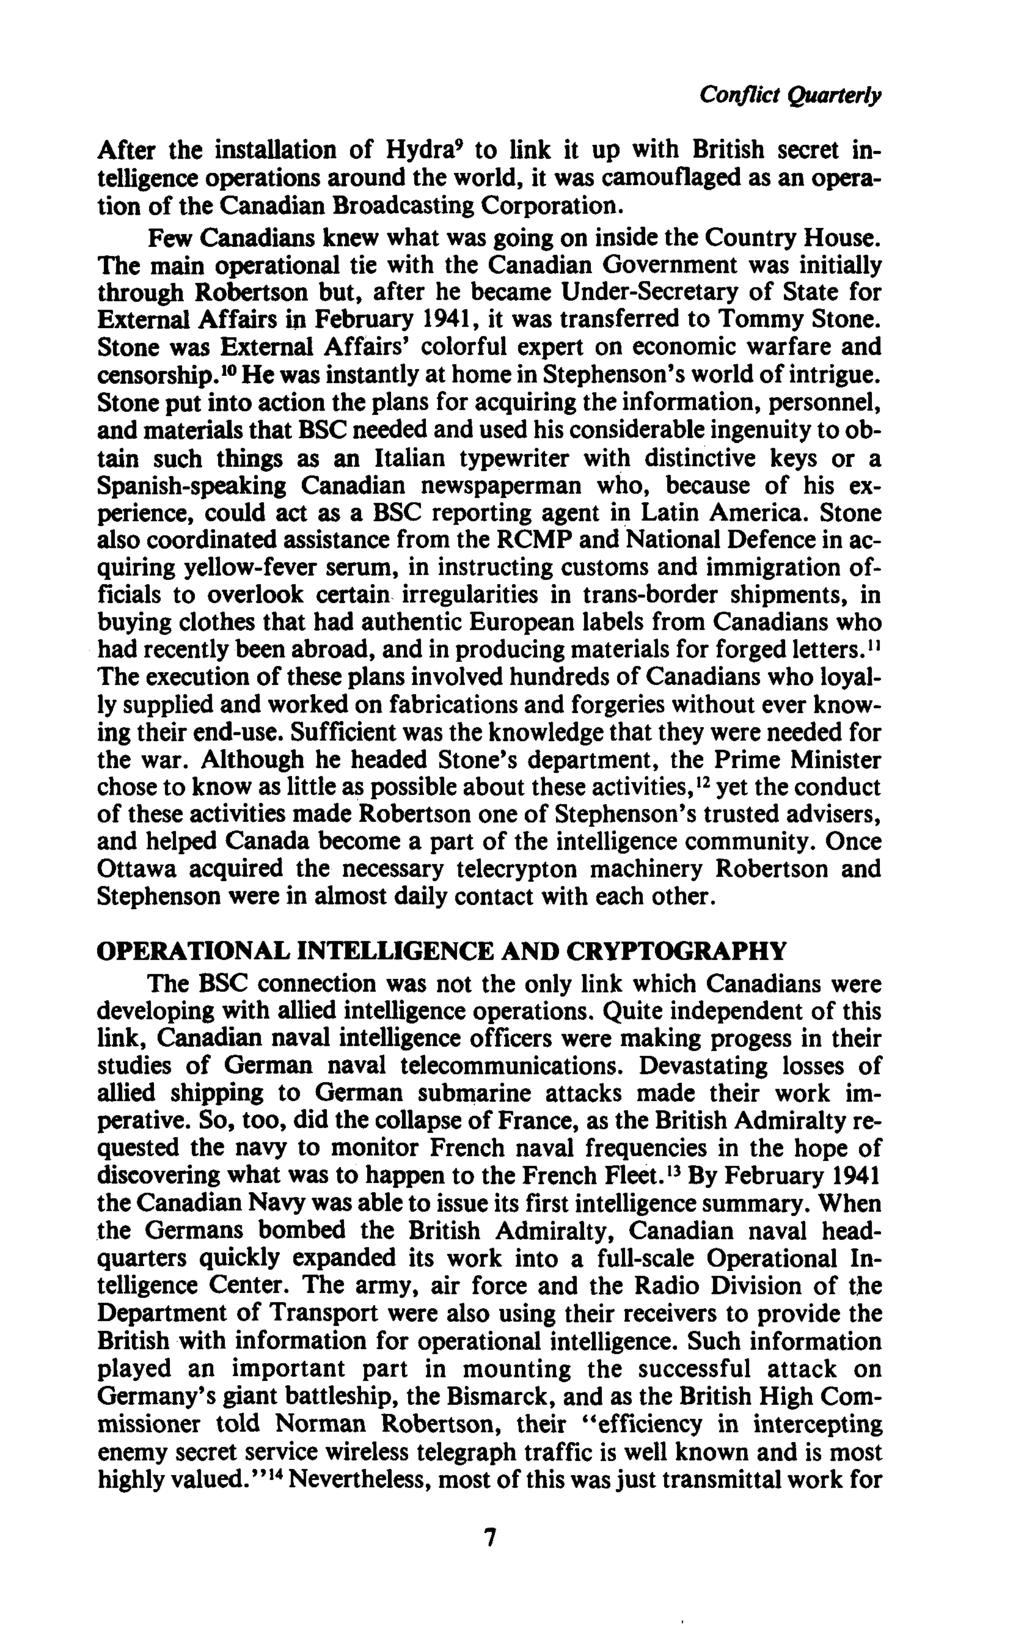 Conflict Quarterly After the installation of Hydra 9 to link it up with British secret intelligence operations around the world, it was camouflaged as an operation of the Canadian Broadcasting